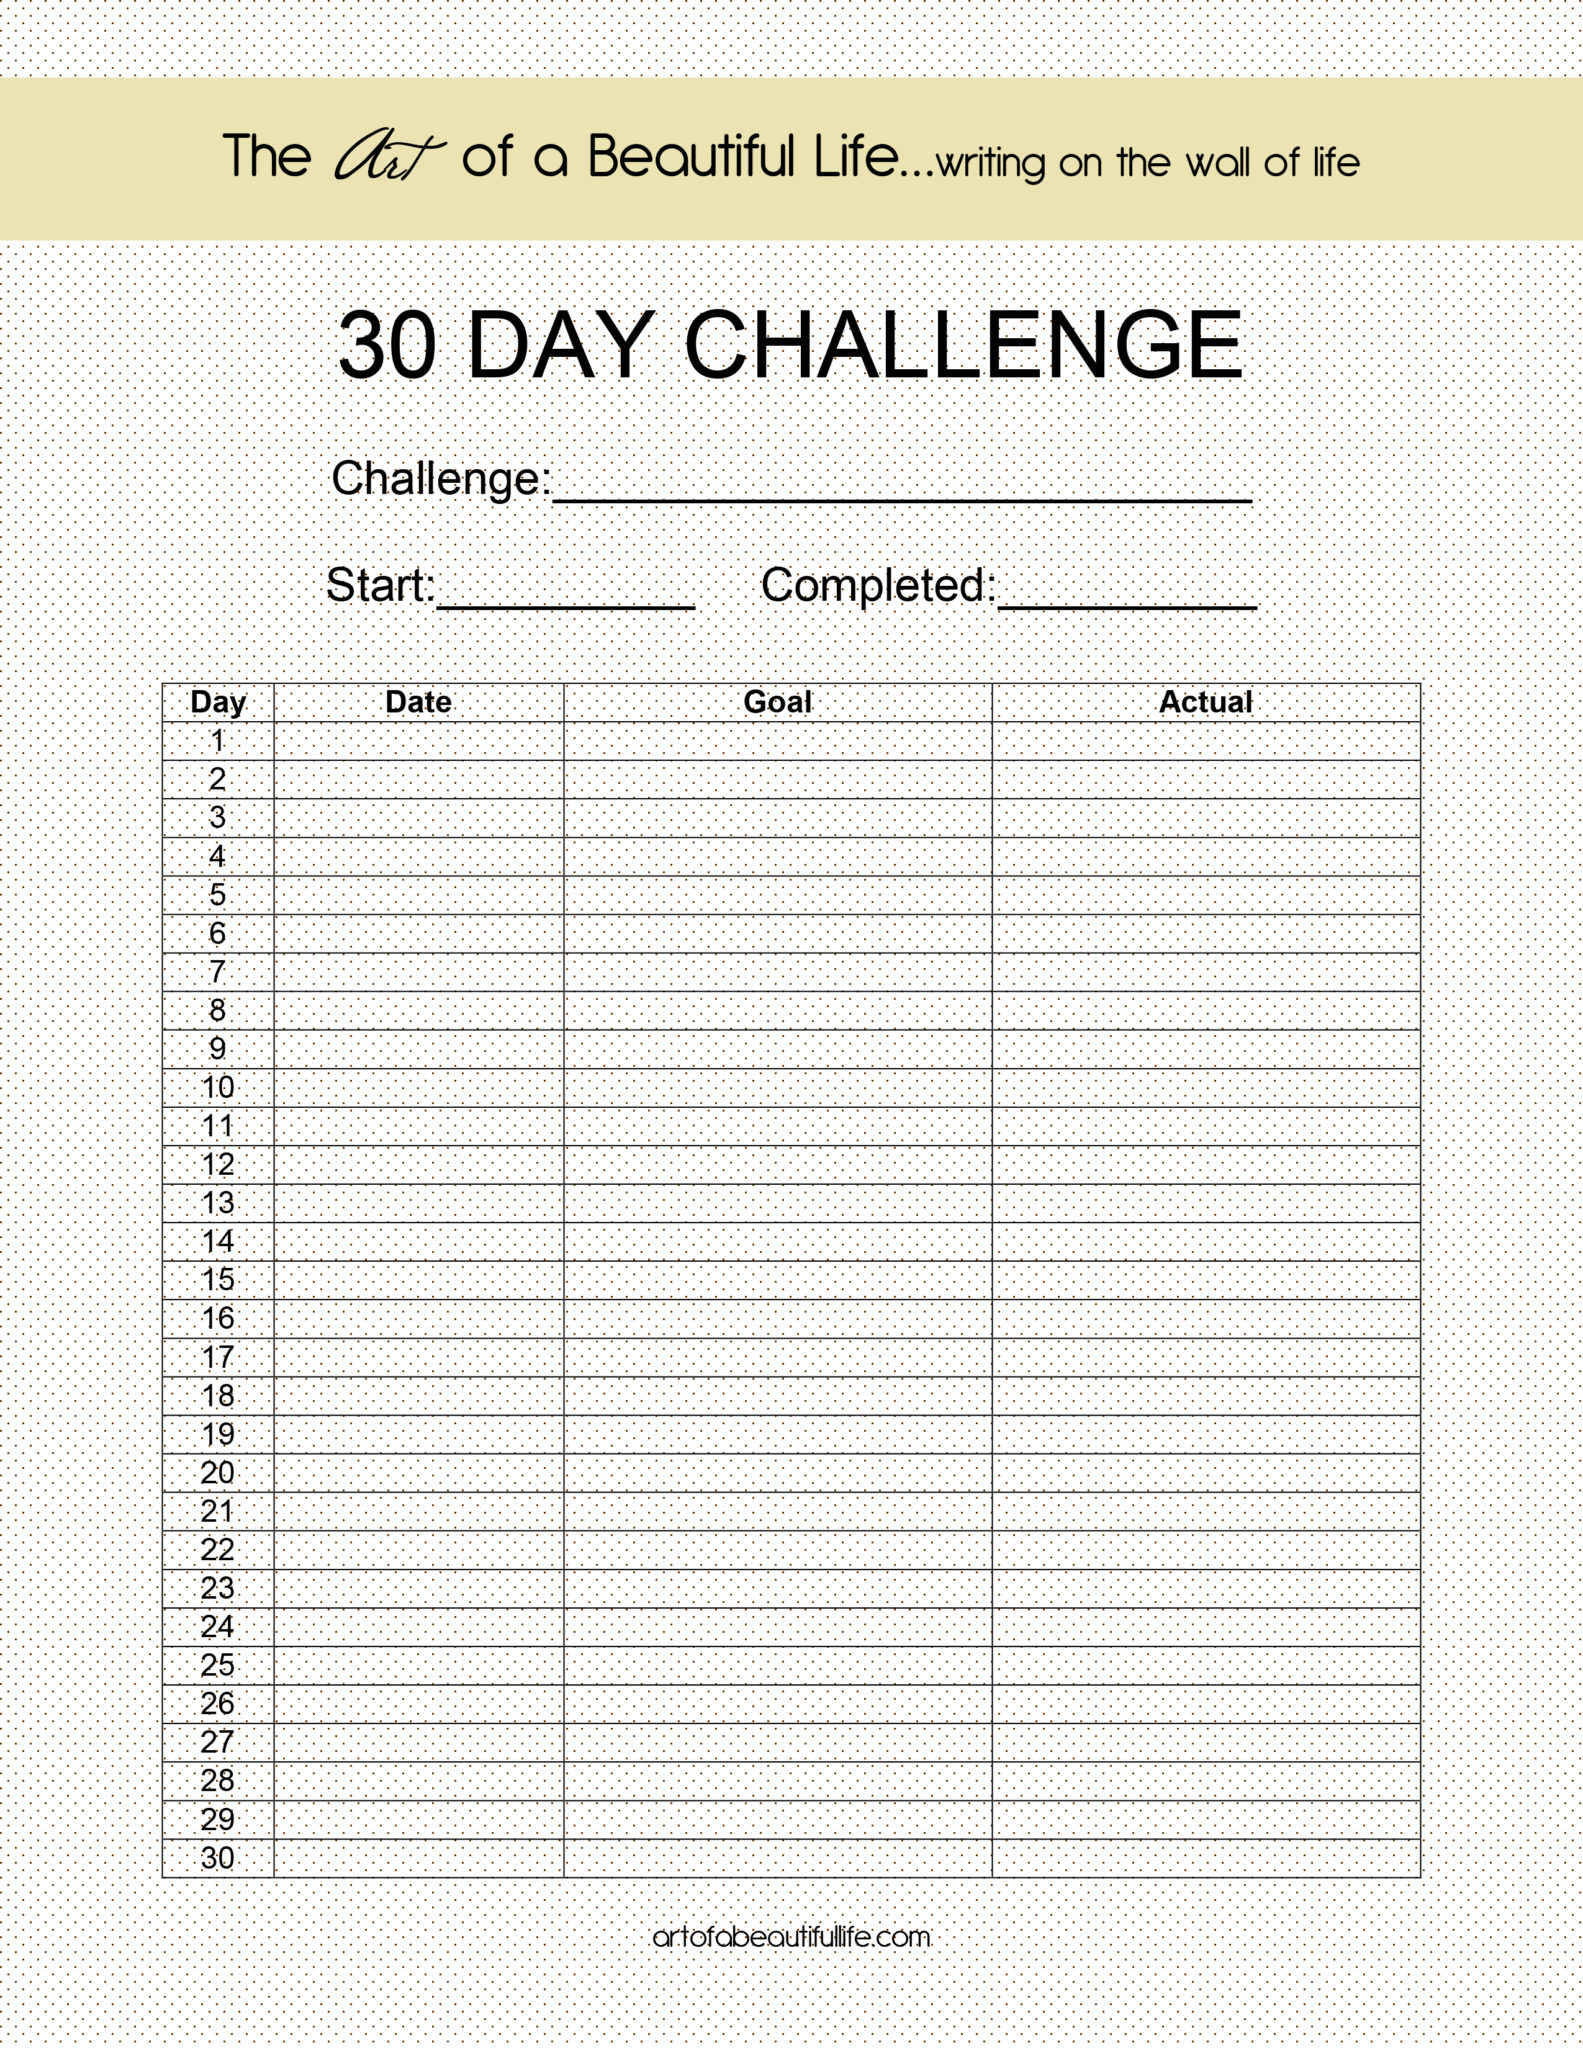 BLANK 30 DAY CHALLENGE - The Art of a Beautiful Life